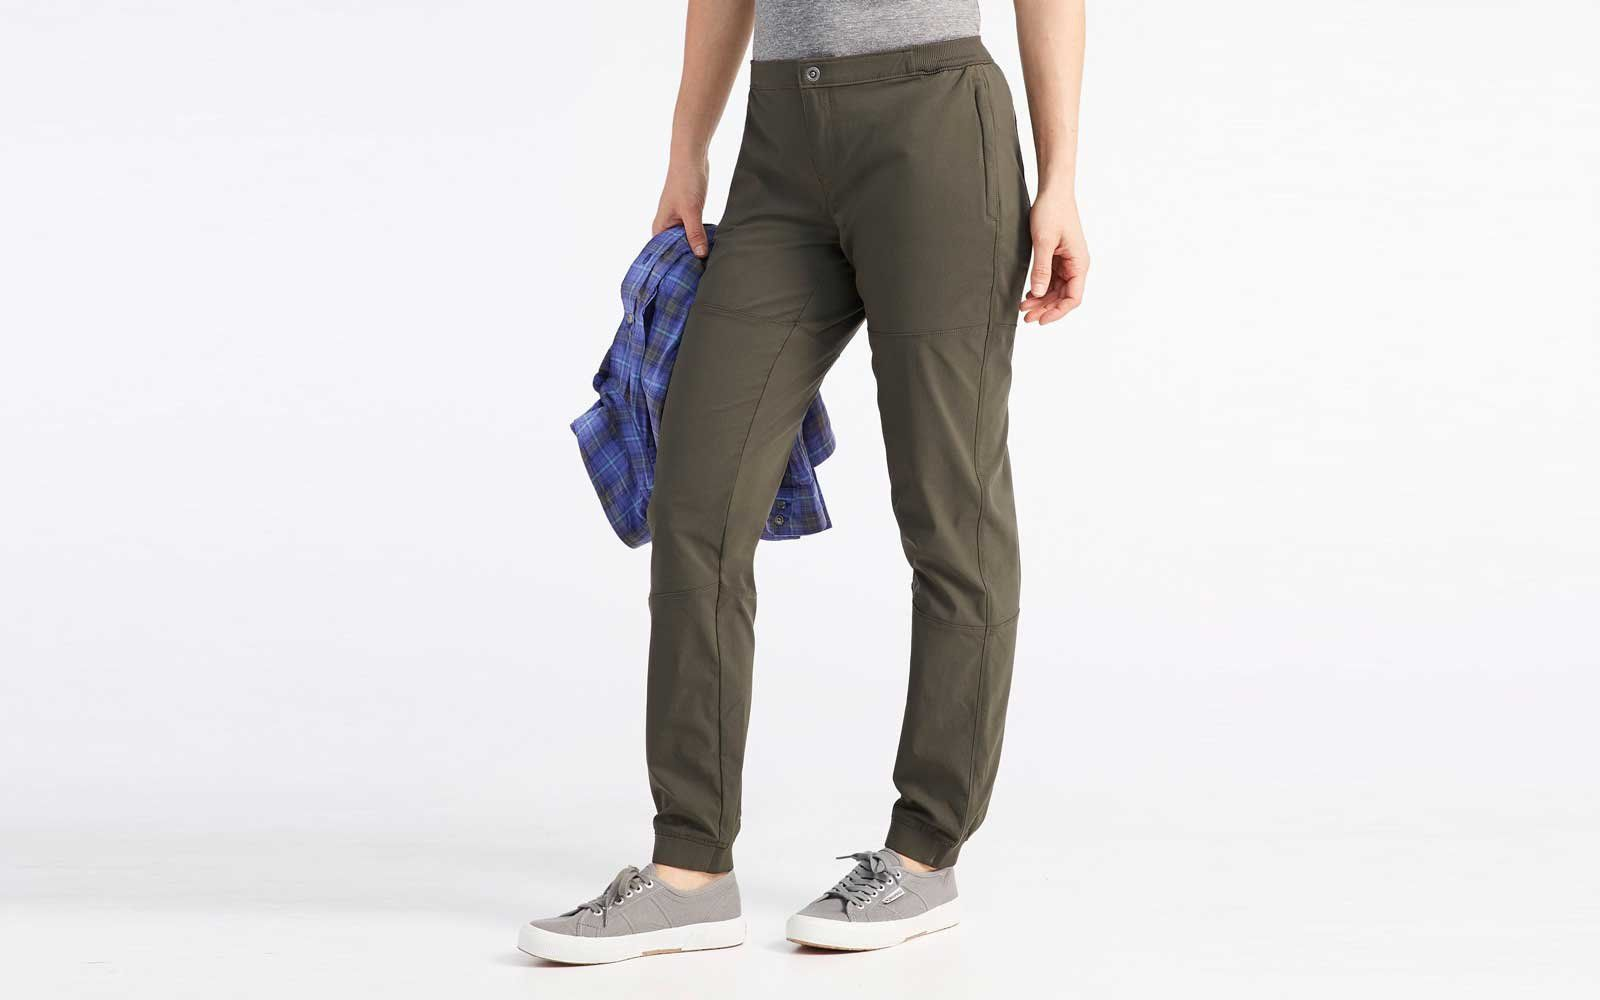 02ff5d9983 The Best Travel Pants for Women Who Hate Flying in Jeans | Eight pairs of  joggers, jeggings, and hiking pants that can easily take you from brunch to  the ...